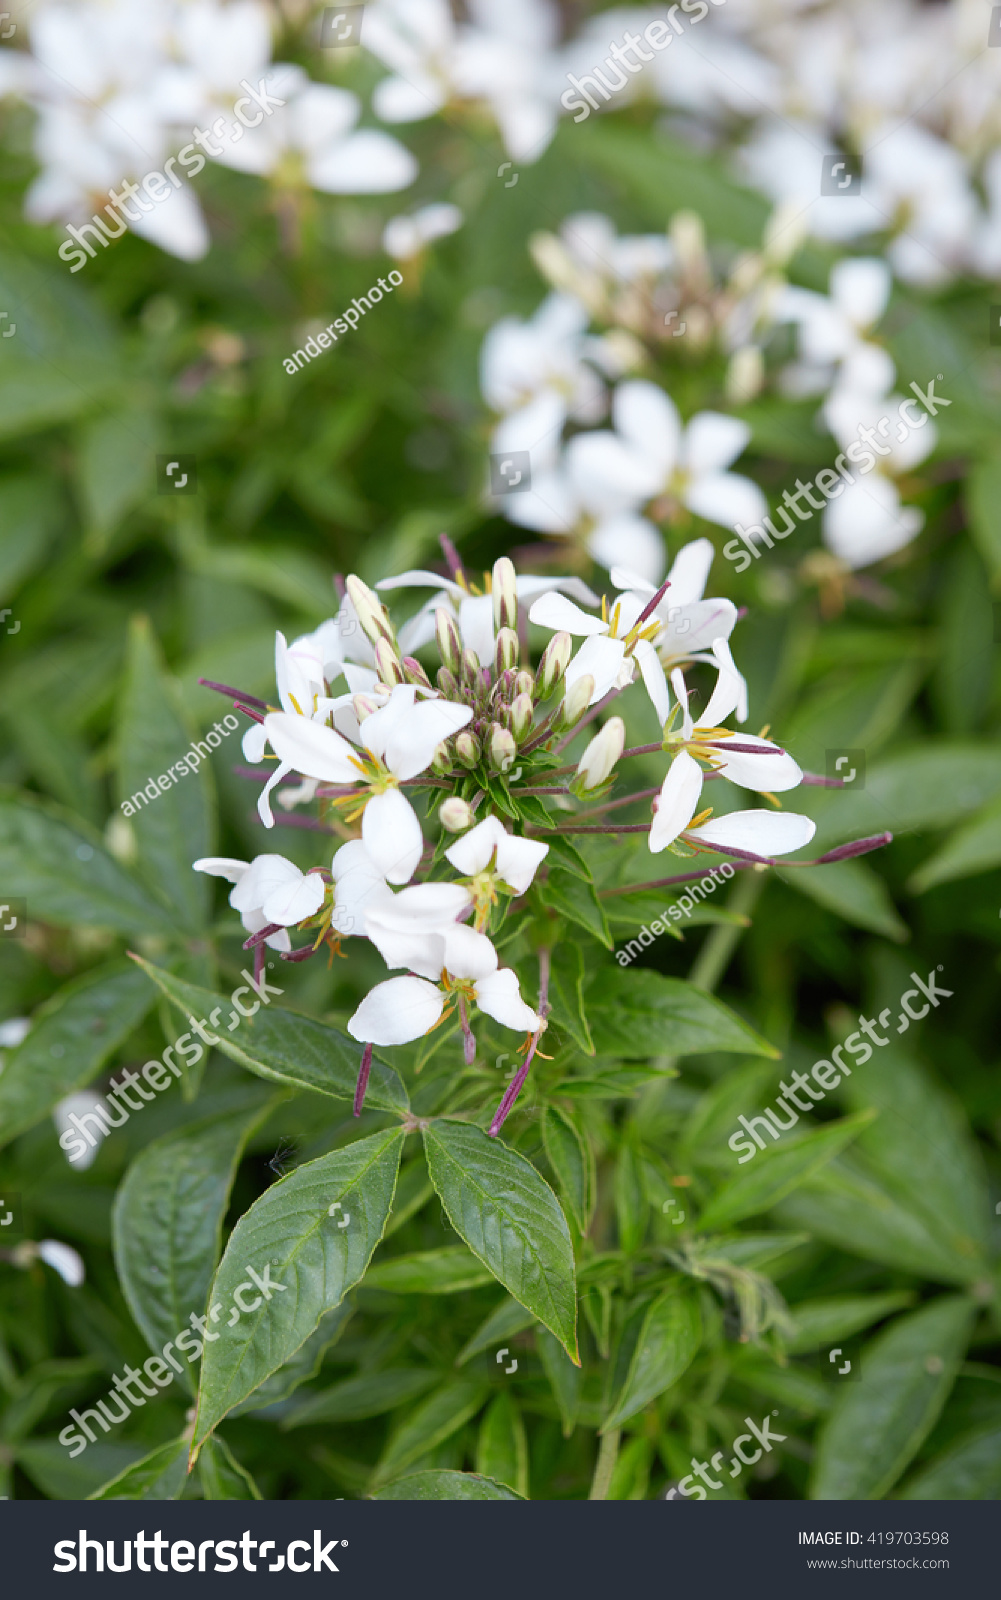 Cleome White Spider Flower And Leaves Ez Canvas